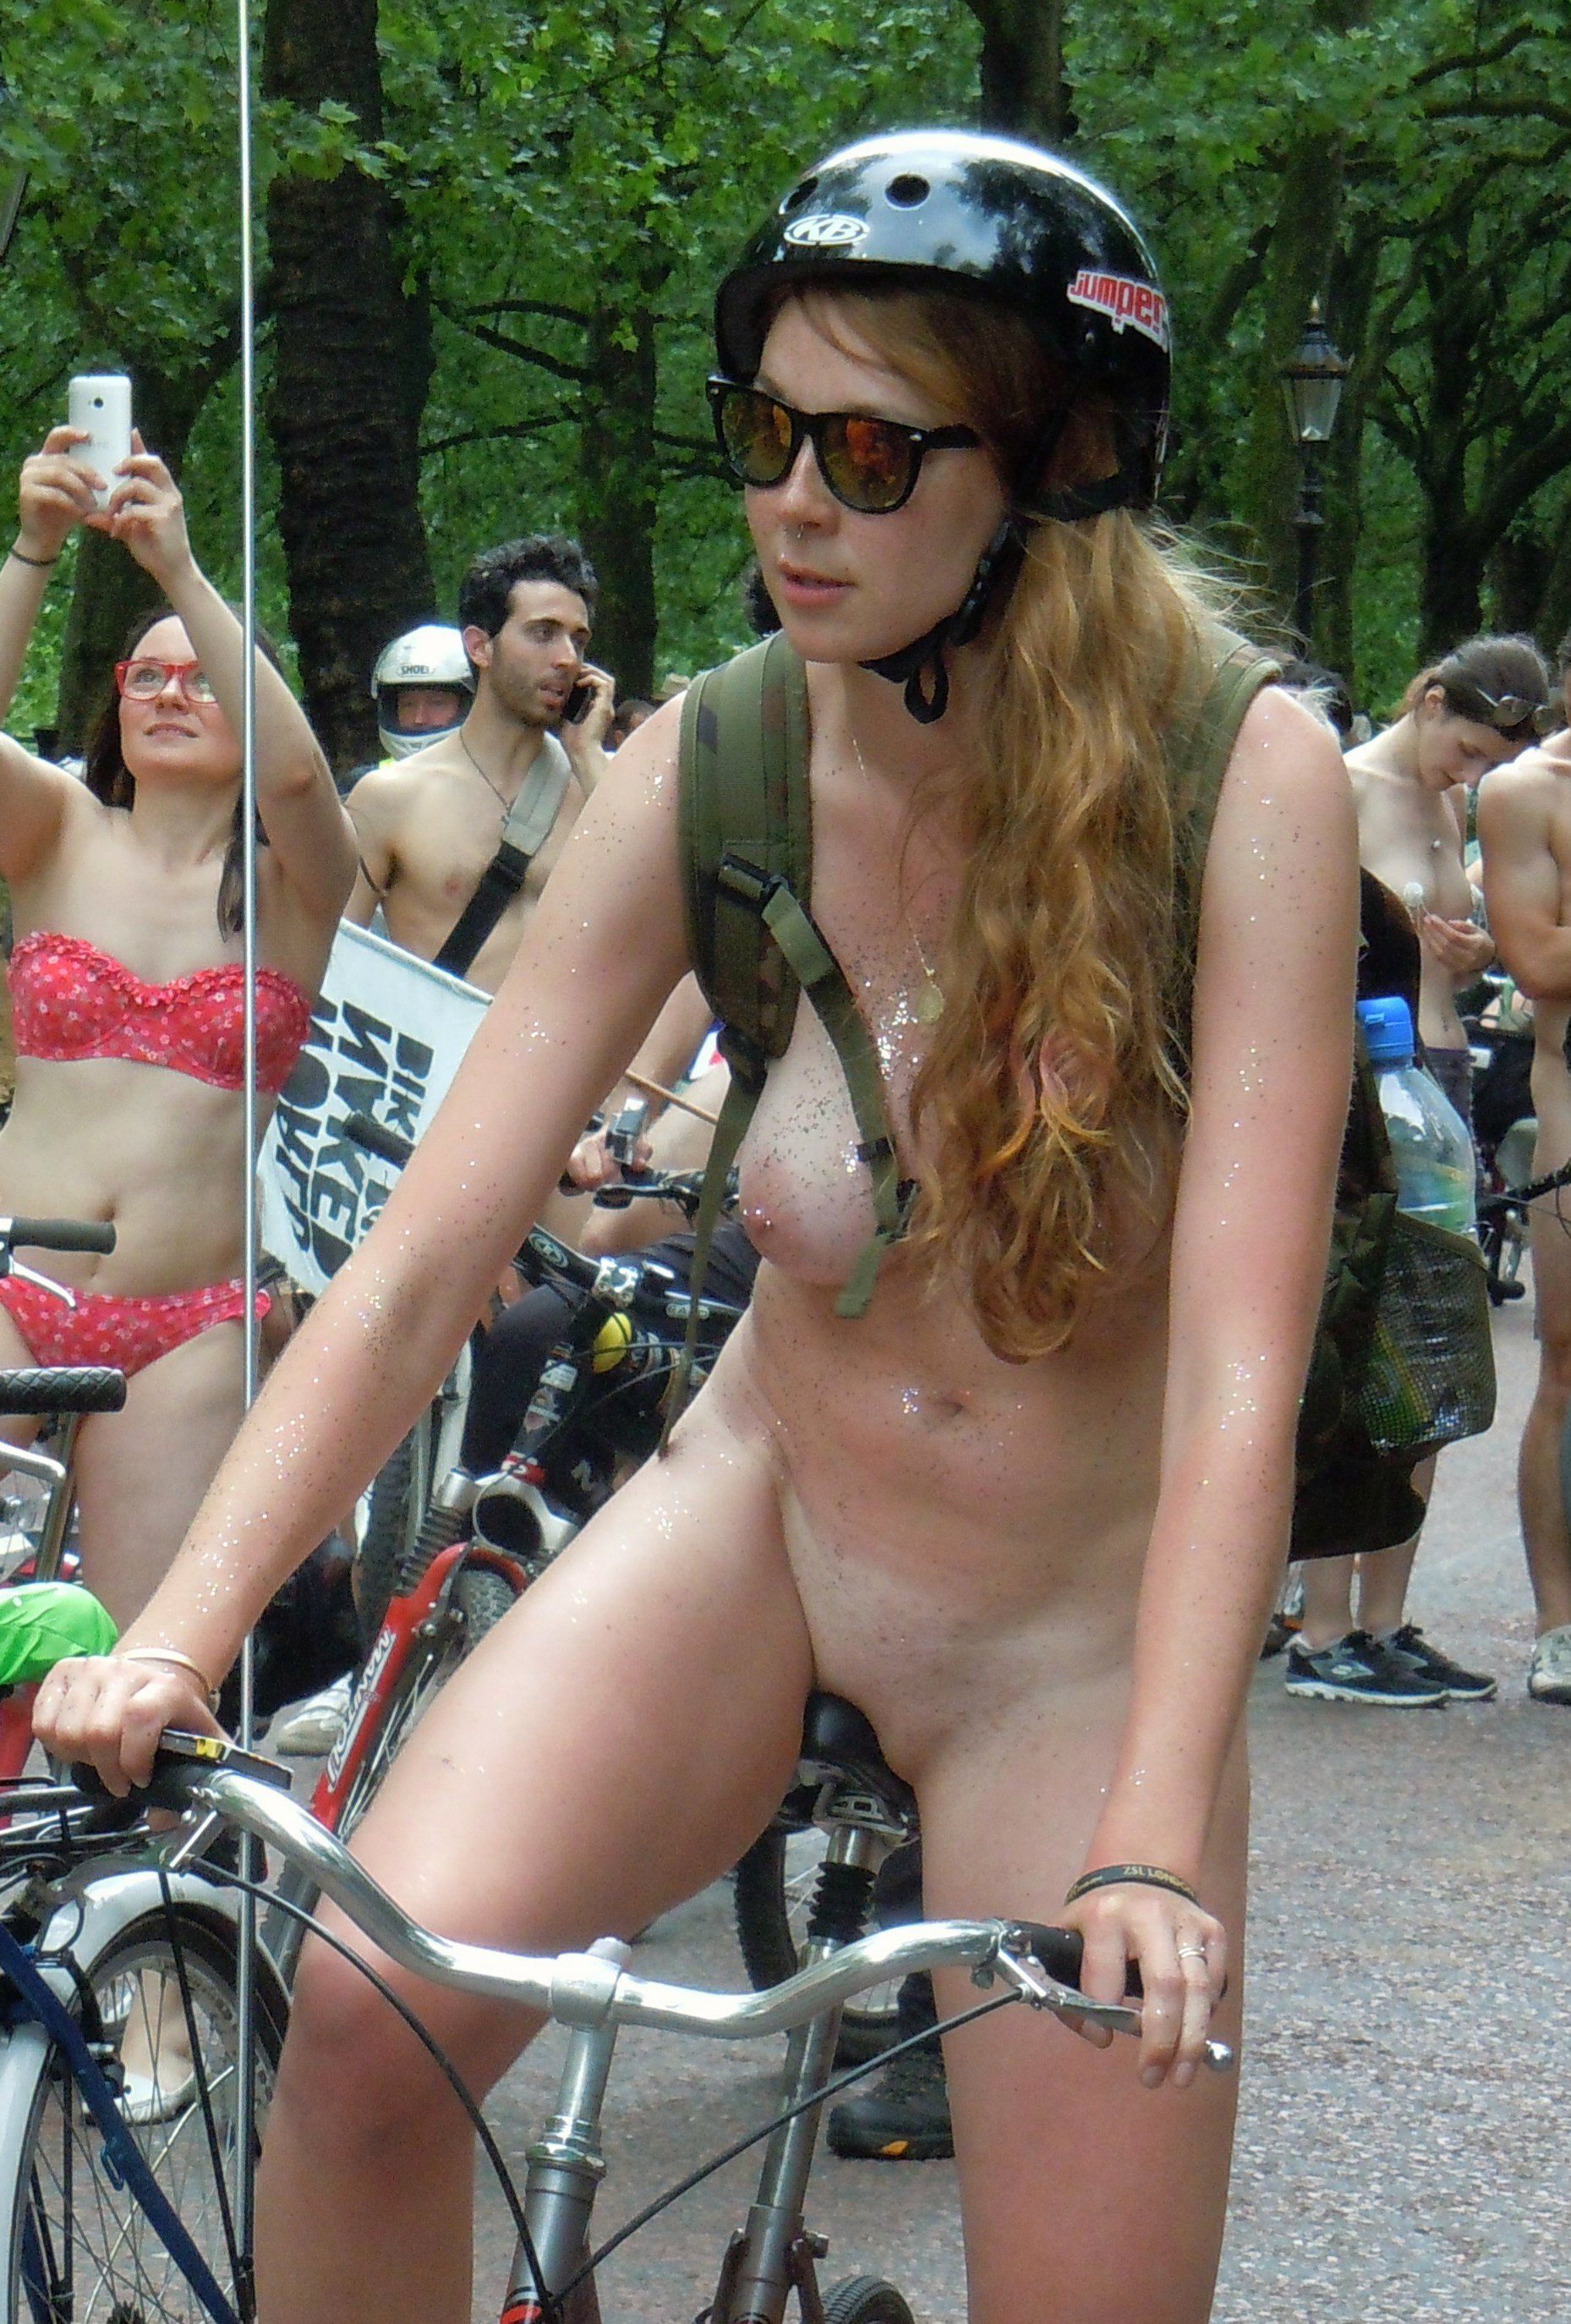 Naked ladies riding bicycles